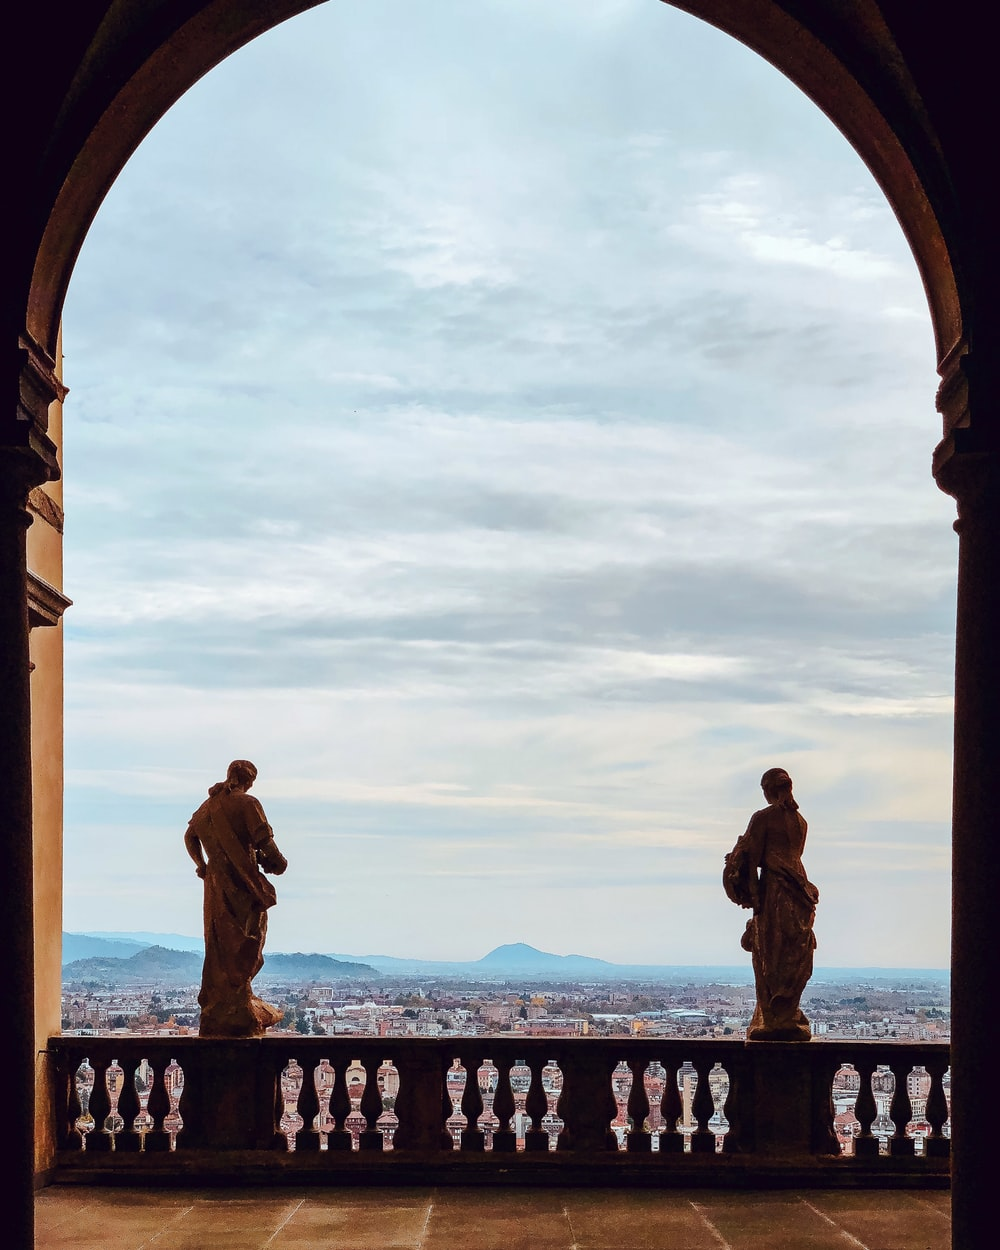 two statues on balcony railing during day